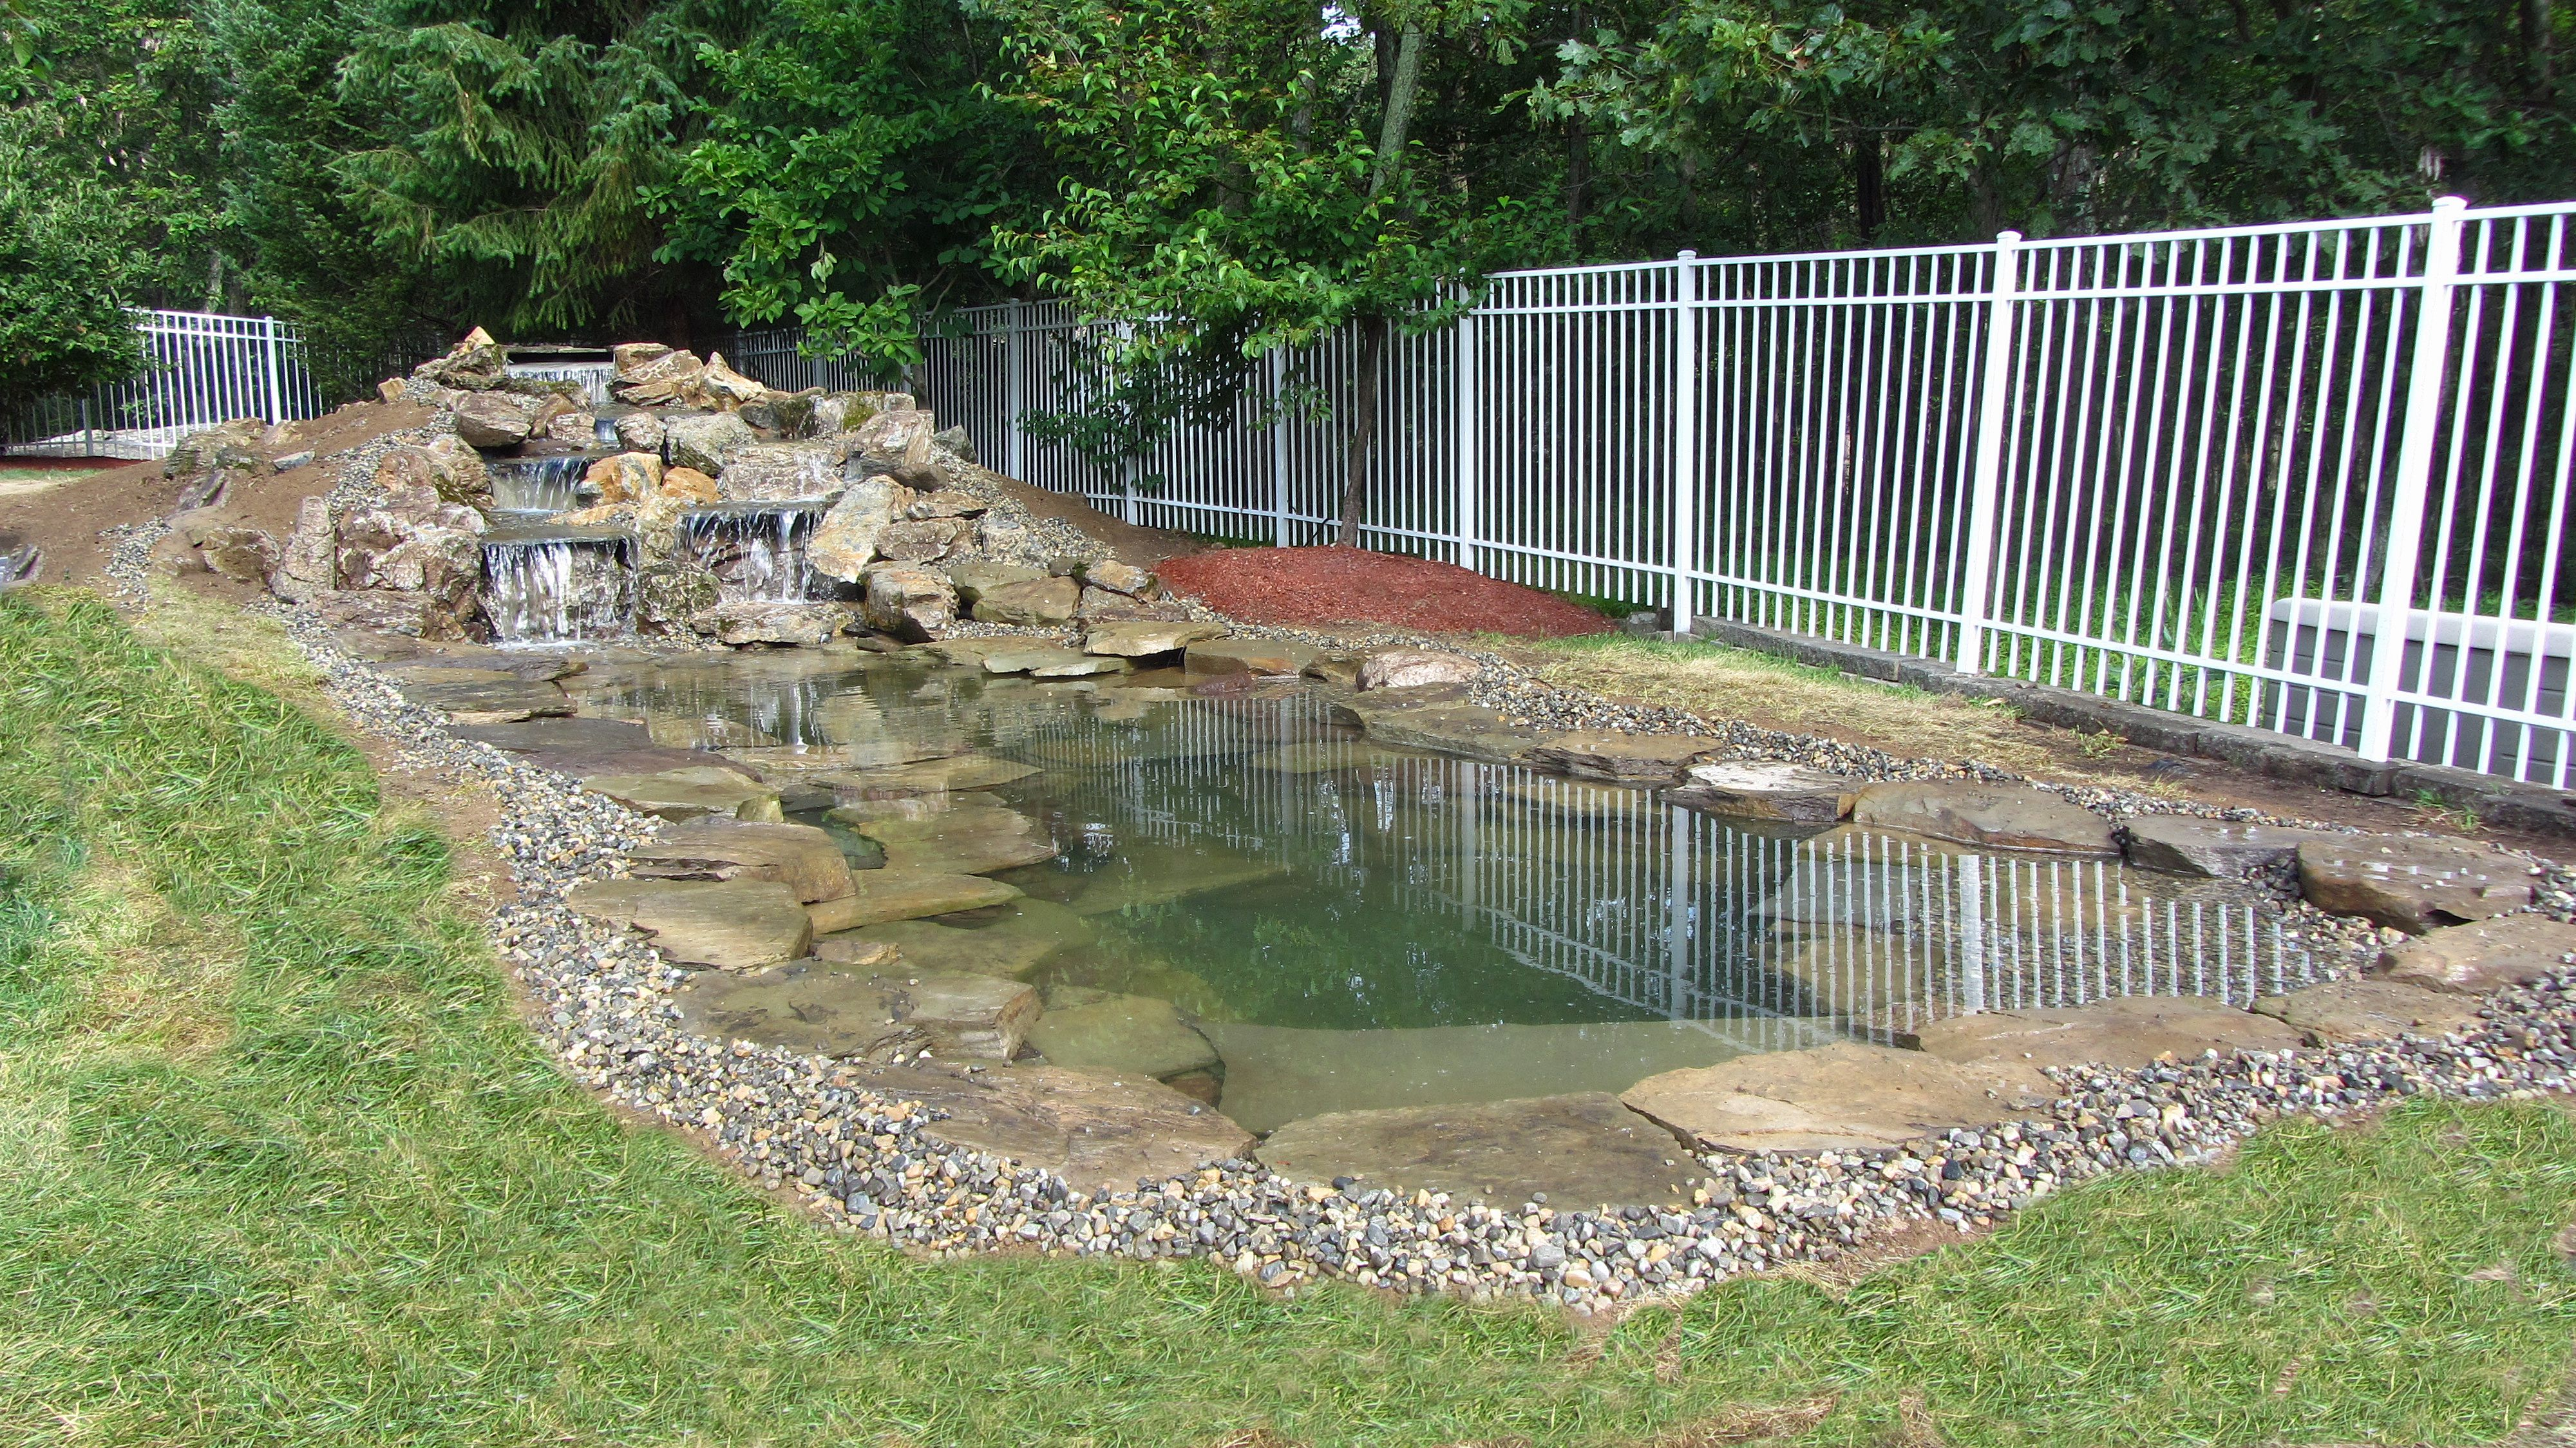 Park Art|My WordPress Blog_How To Clean Bottom Of Pool Without Draining